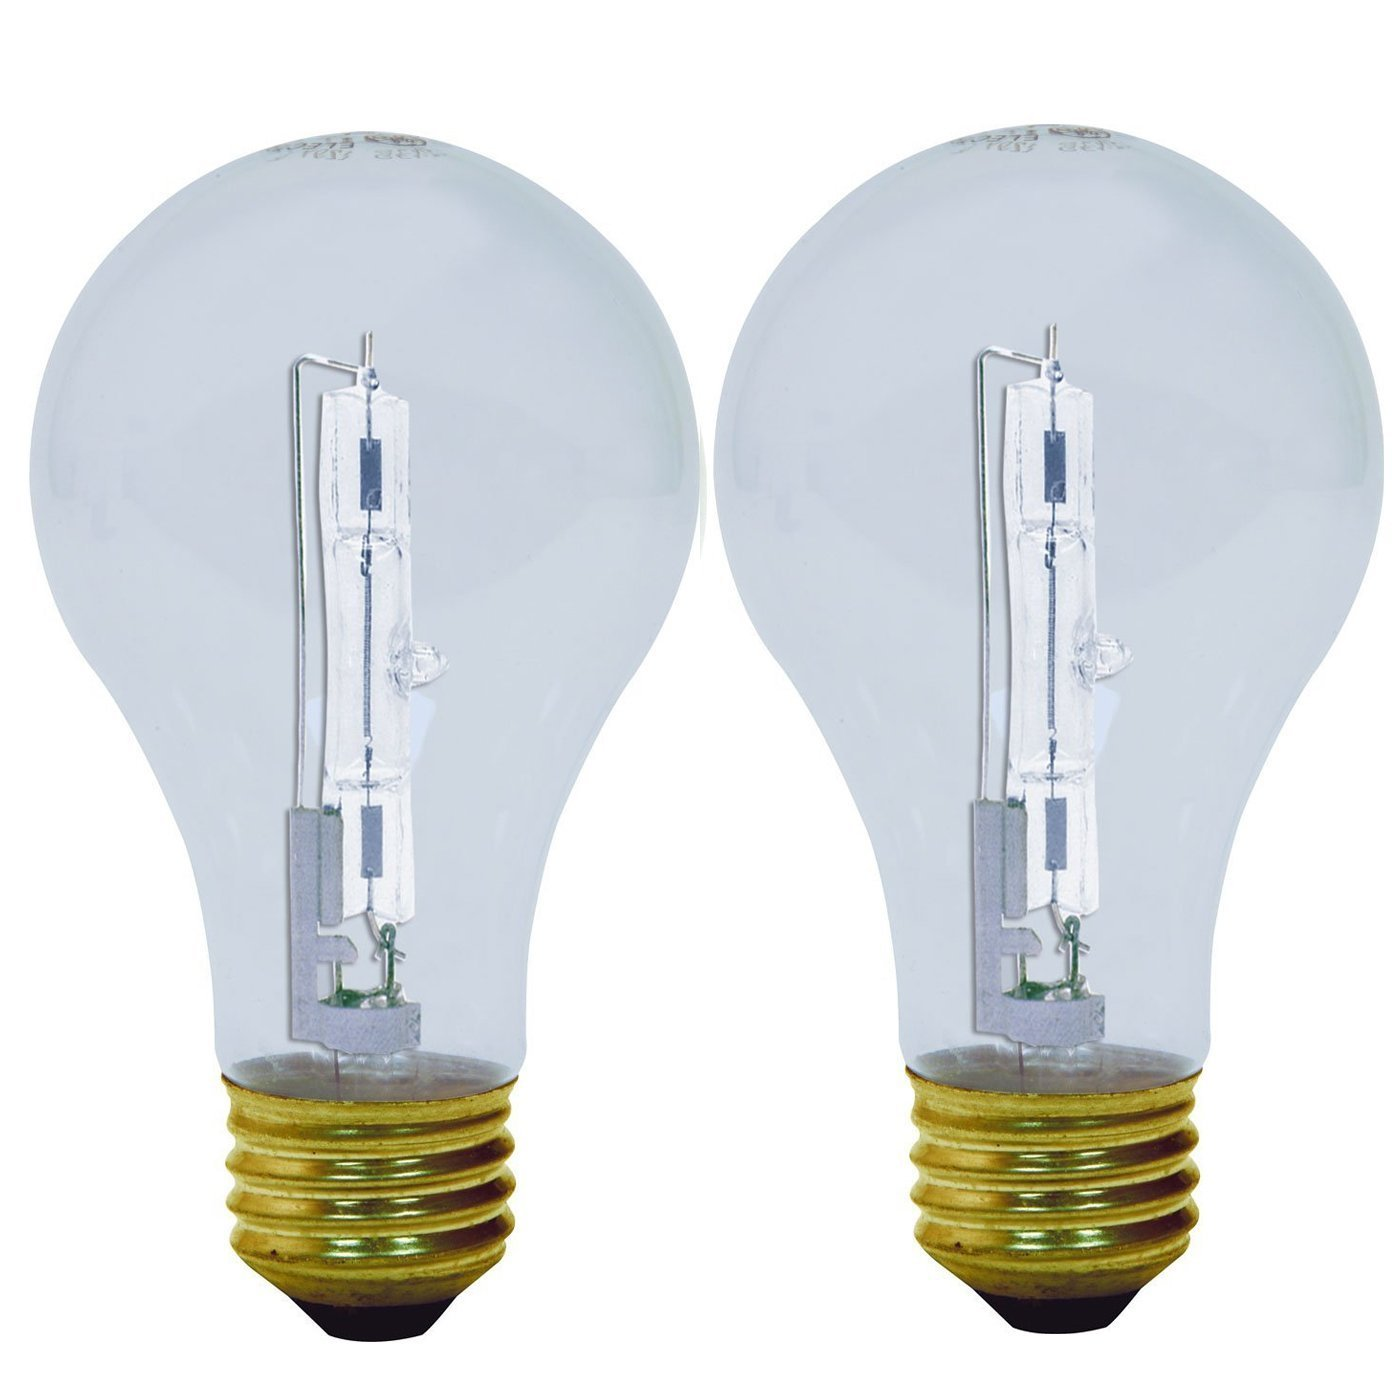 92 how many lumens is a 60 watt light bulb ge lighting 74437 energy smart cfl 15 watt 60 Light bulbs energy efficient